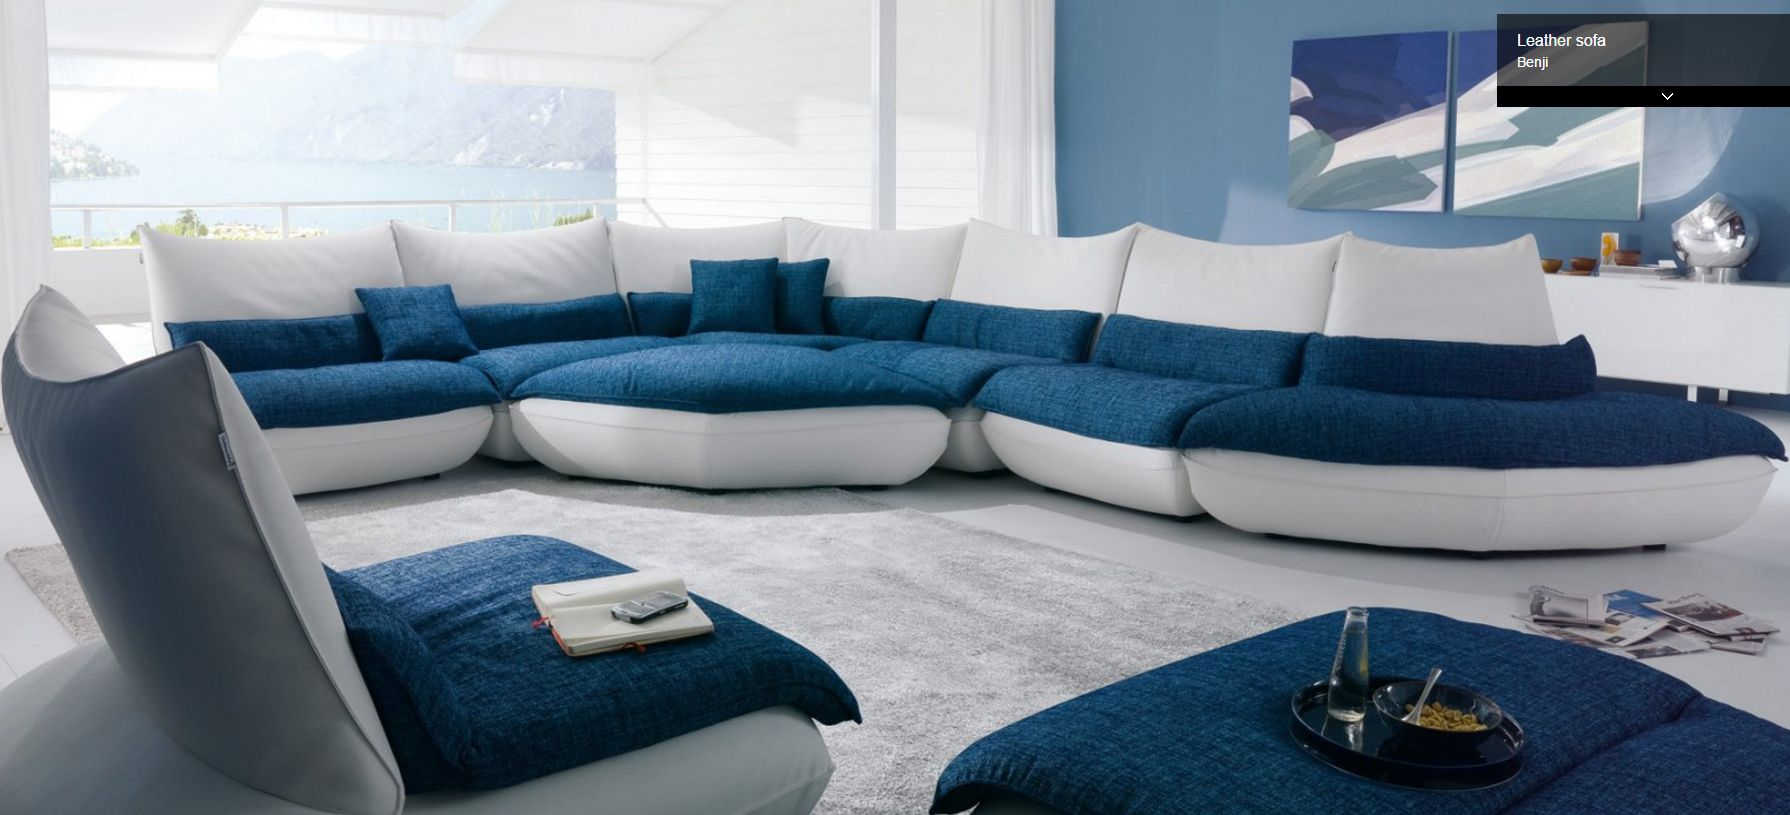 Divani chateau d ax leather sofa - Benji Sectional By Chateau D Ax Italy Shown As A Leather And Fabric